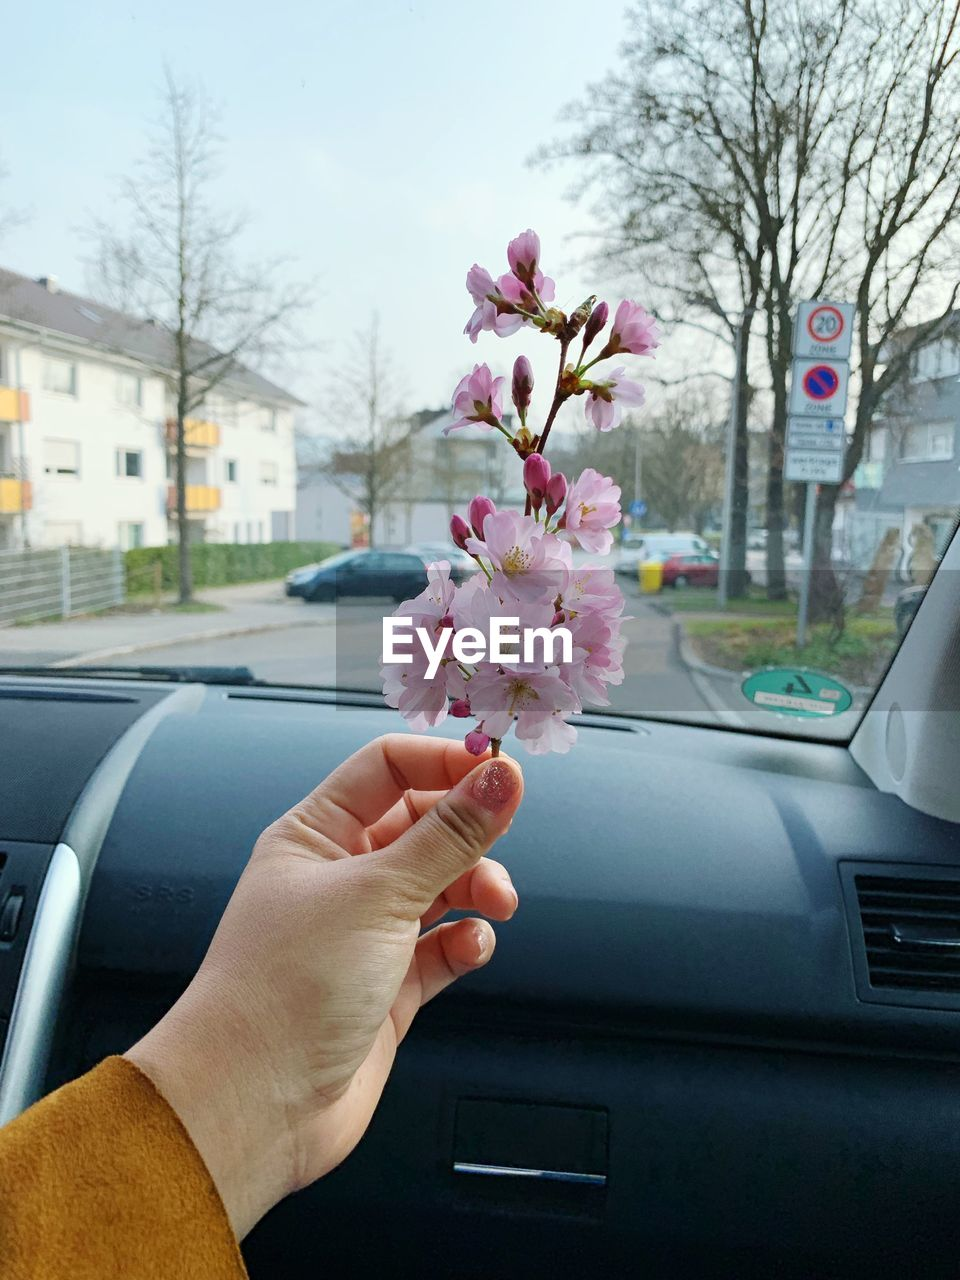 car, mode of transportation, motor vehicle, transportation, flower, flowering plant, plant, land vehicle, human hand, hand, one person, human body part, tree, pink color, fragility, real people, nature, holding, freshness, road, outdoors, finger